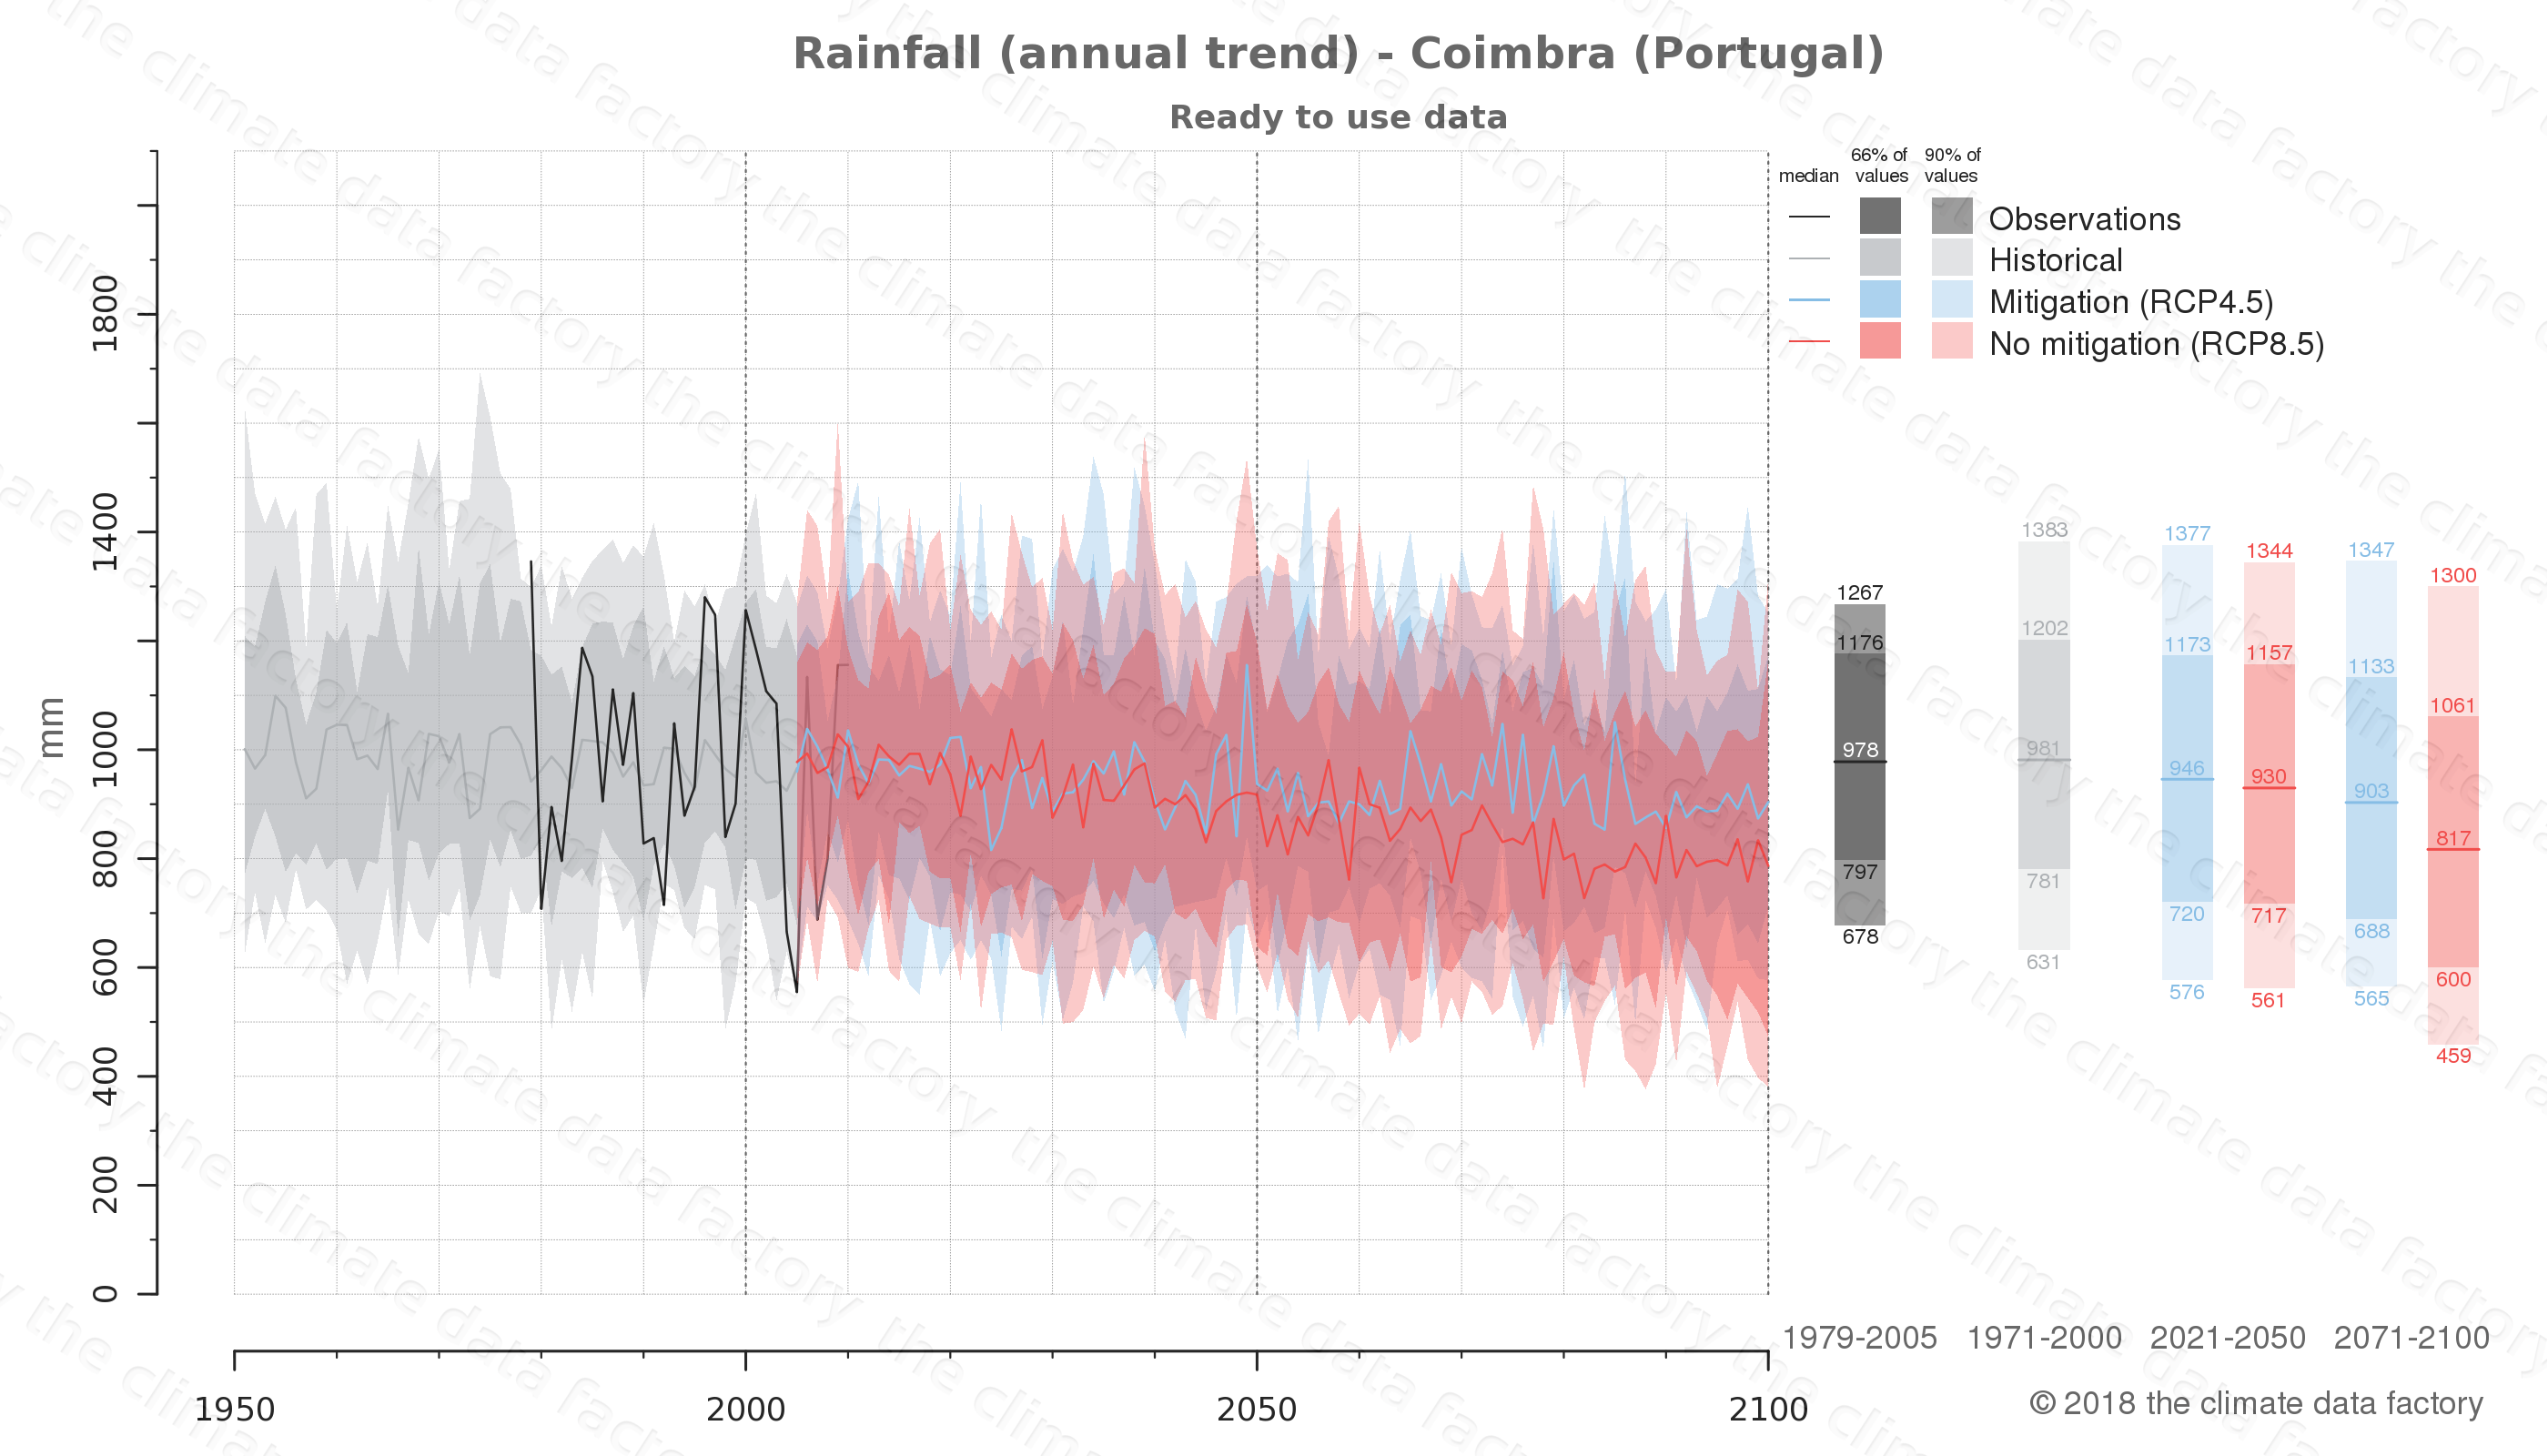 climate change data policy adaptation climate graph city data rainfall coimbra portugal